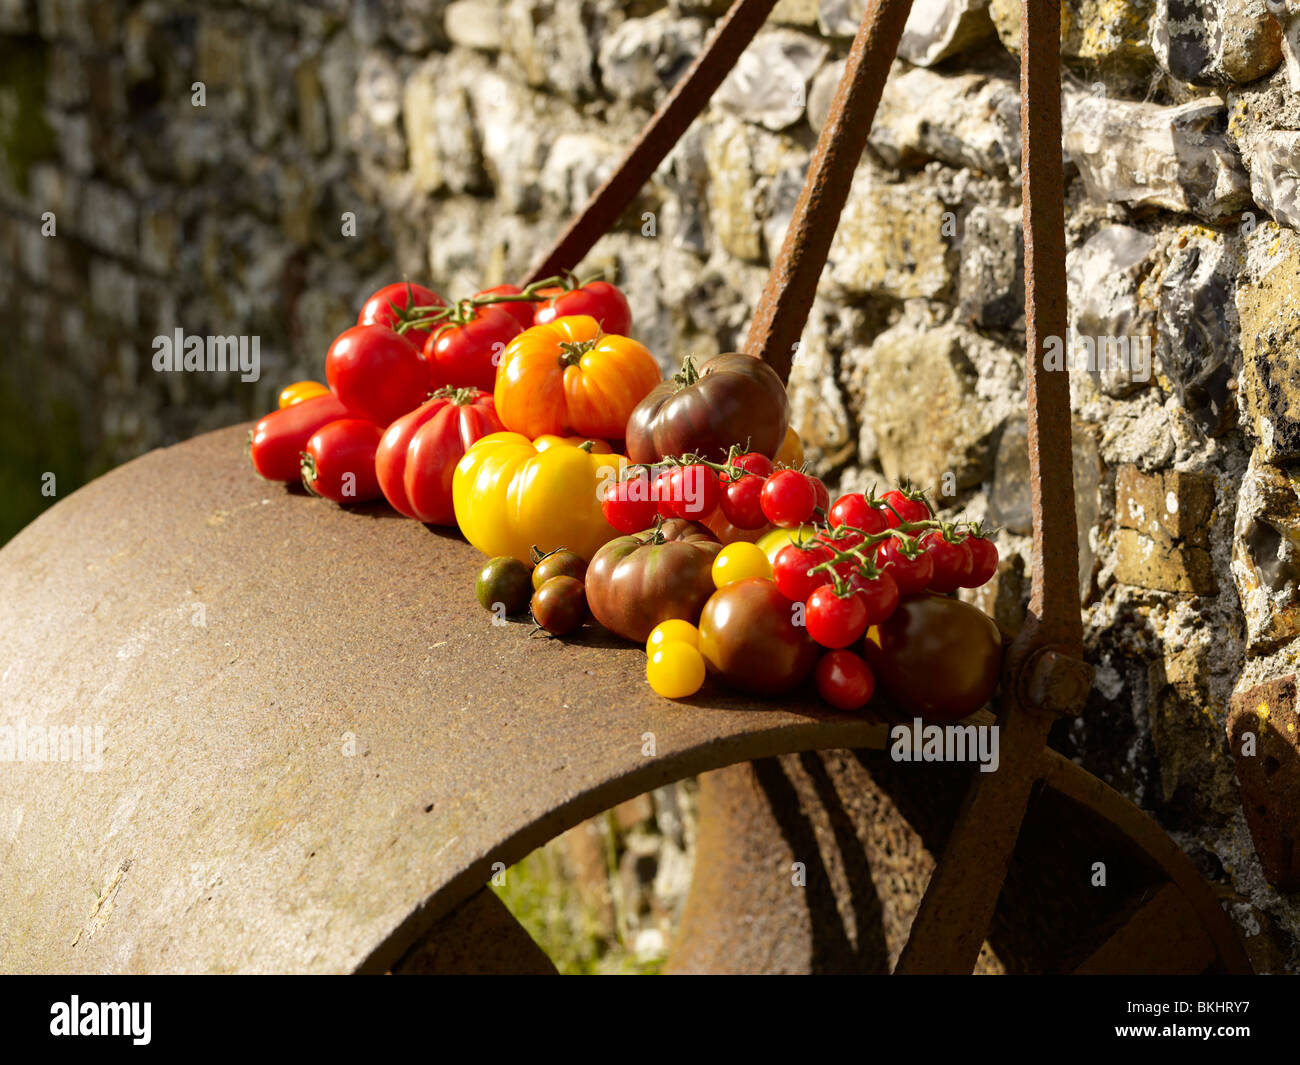 Garden Roller Stock Photos & Garden Roller Stock Images - Alamy